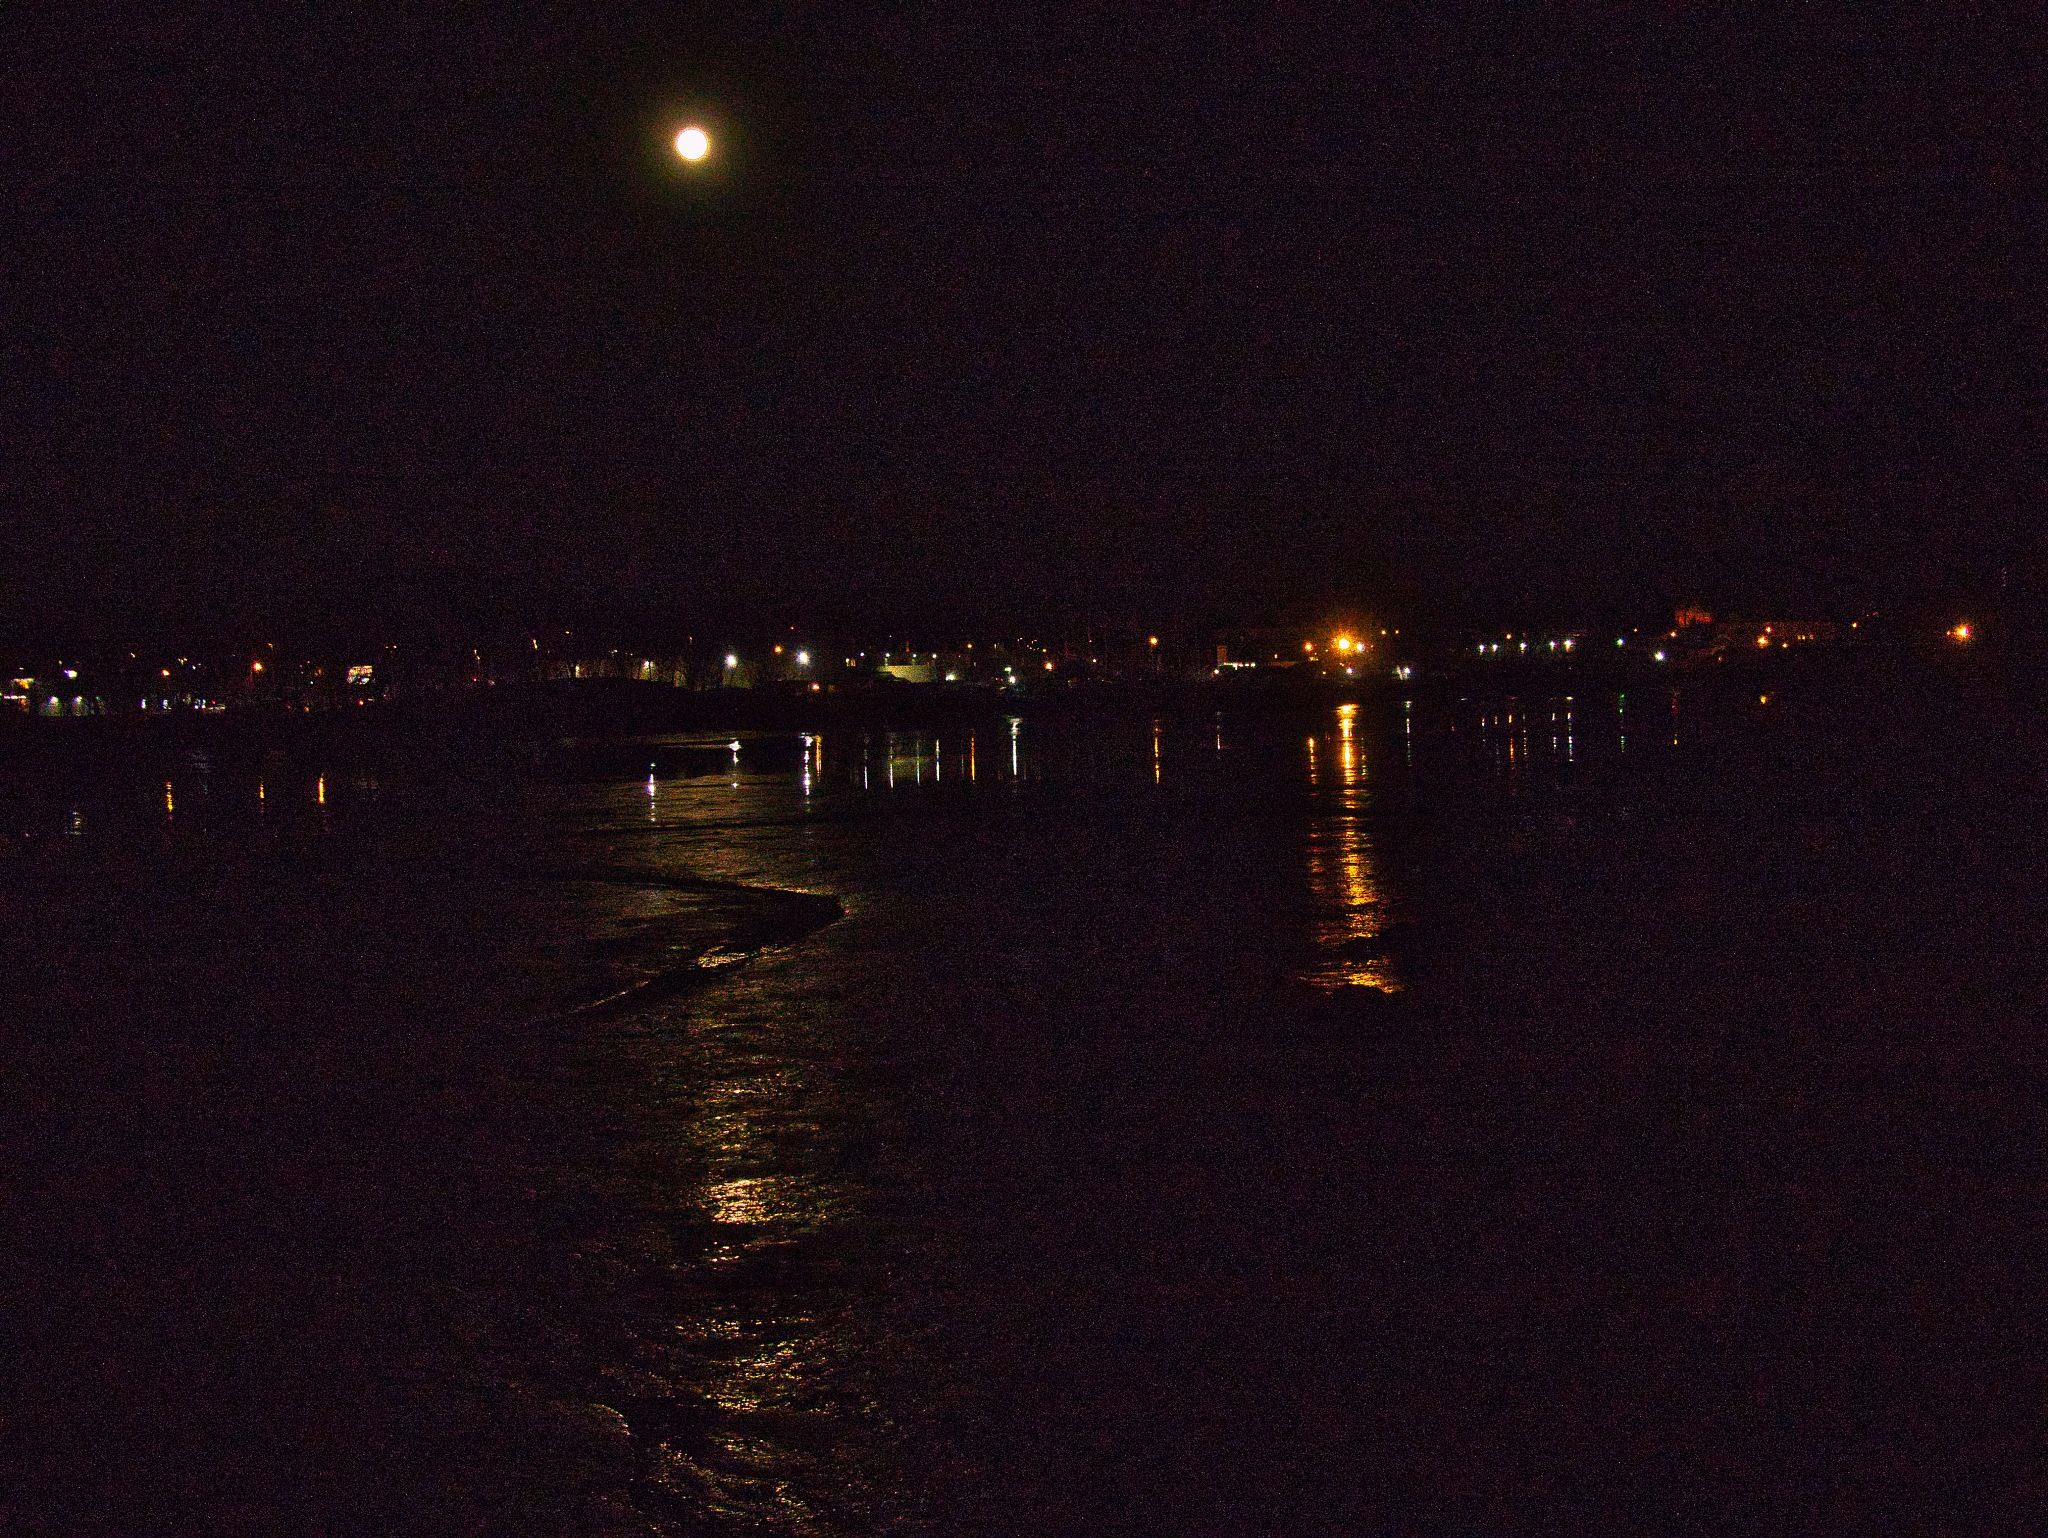 Moonrise over the Bass River at Low Tide by D. Scott Hufford